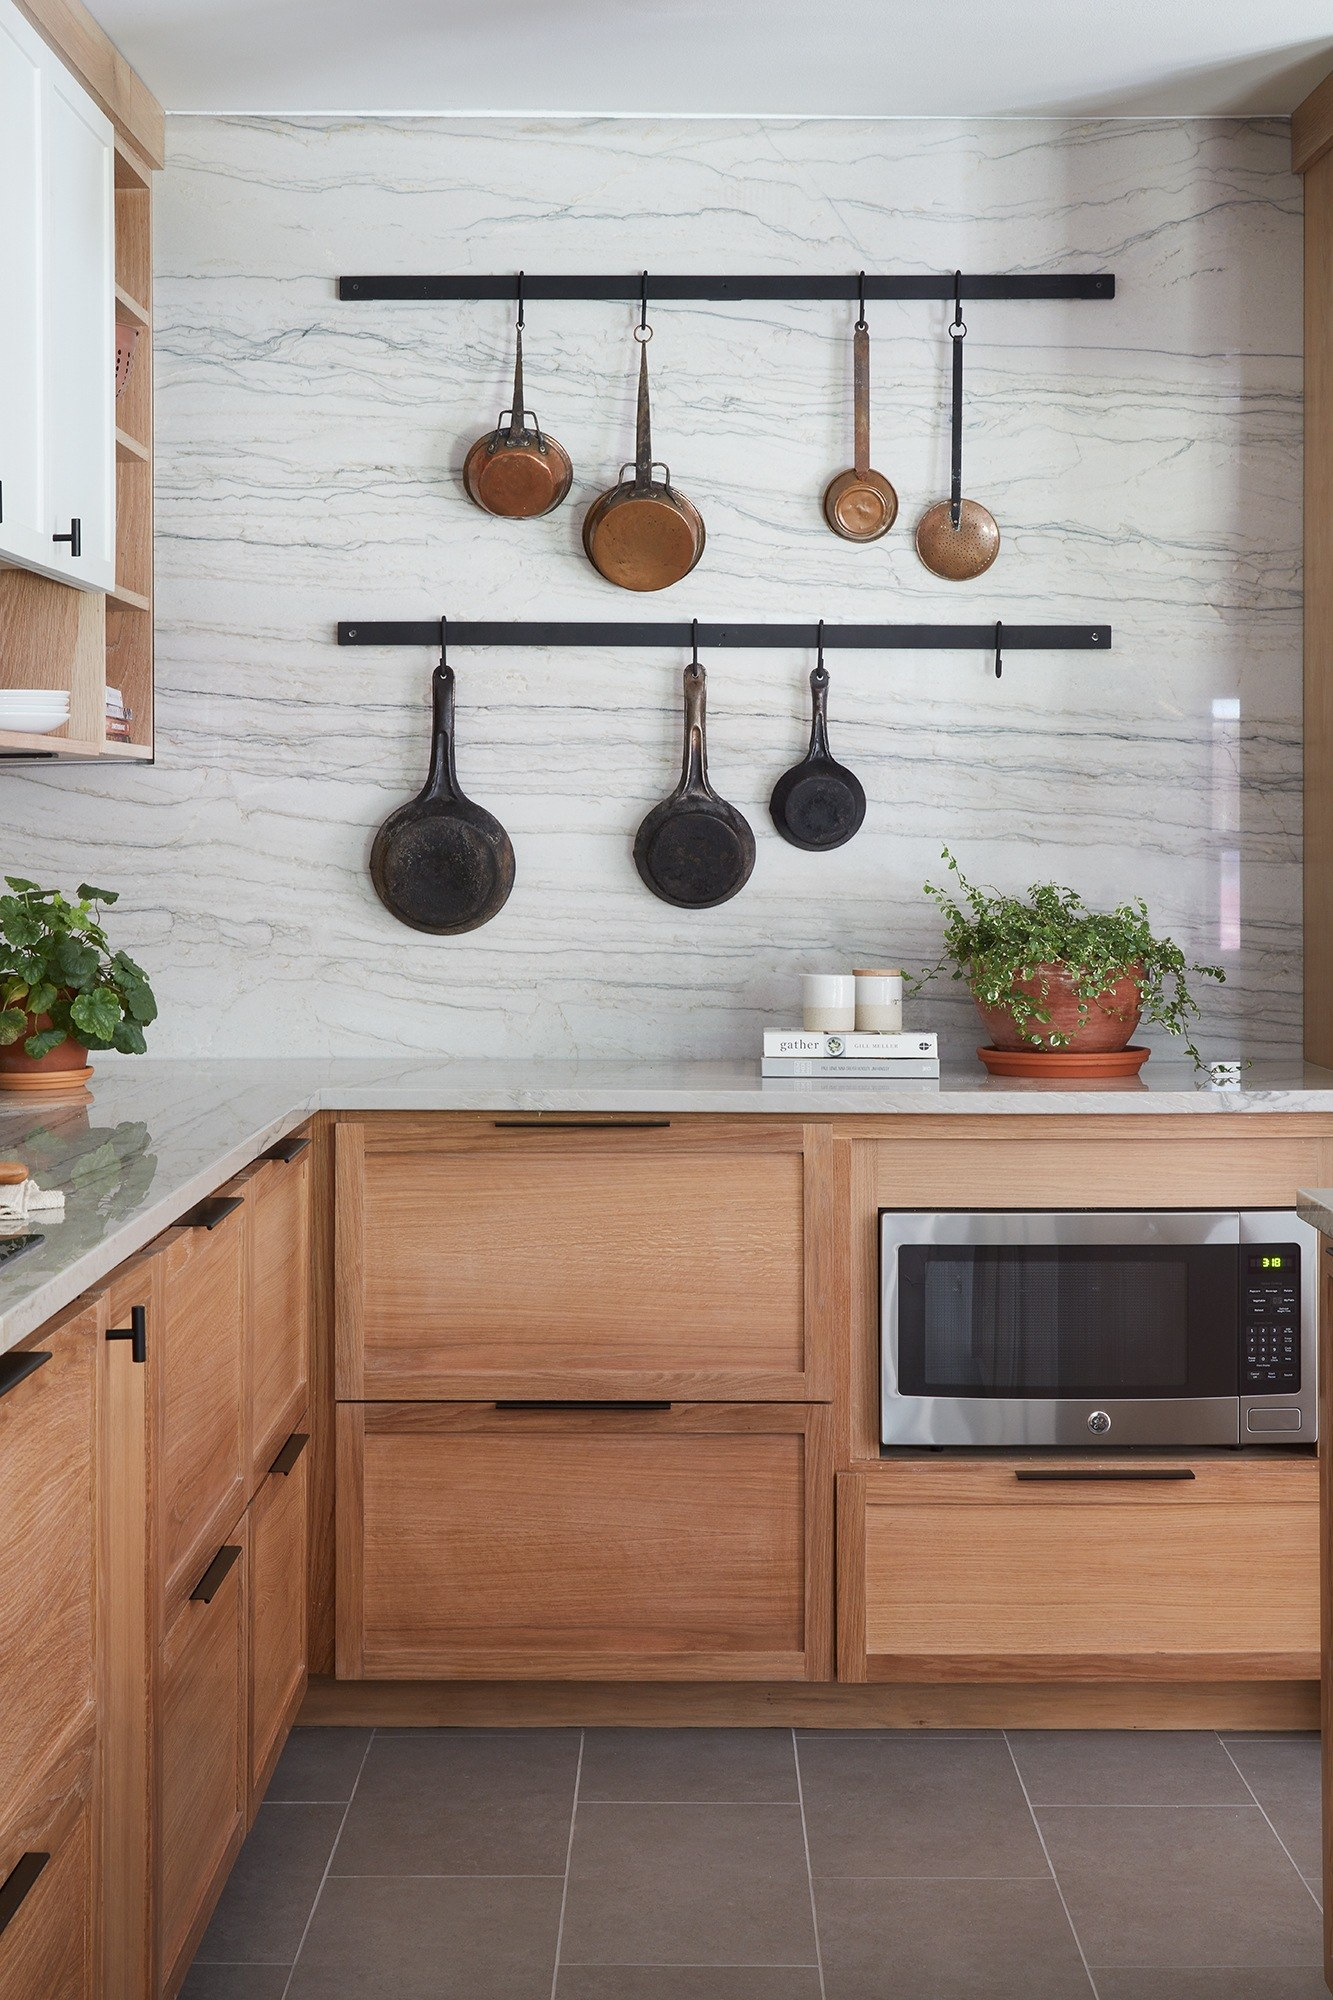 Pictures Of Small Kitchen Design Ideas From Hgtv: Shockingly Simple Design Rules Joanna Gaines Swears By For